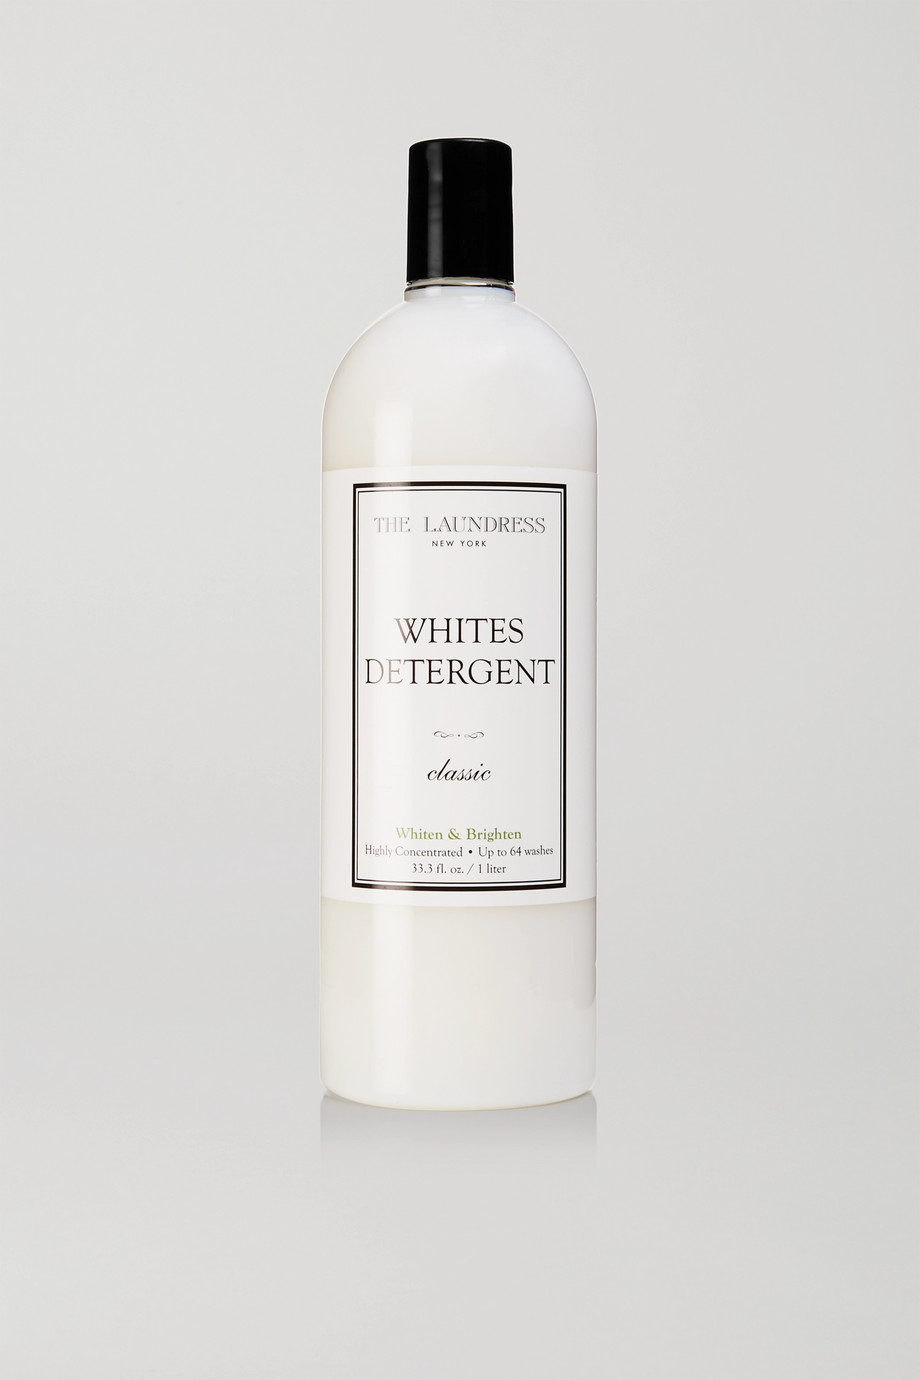 The Laundress 白色衣物专用亮色洗衣液,1L